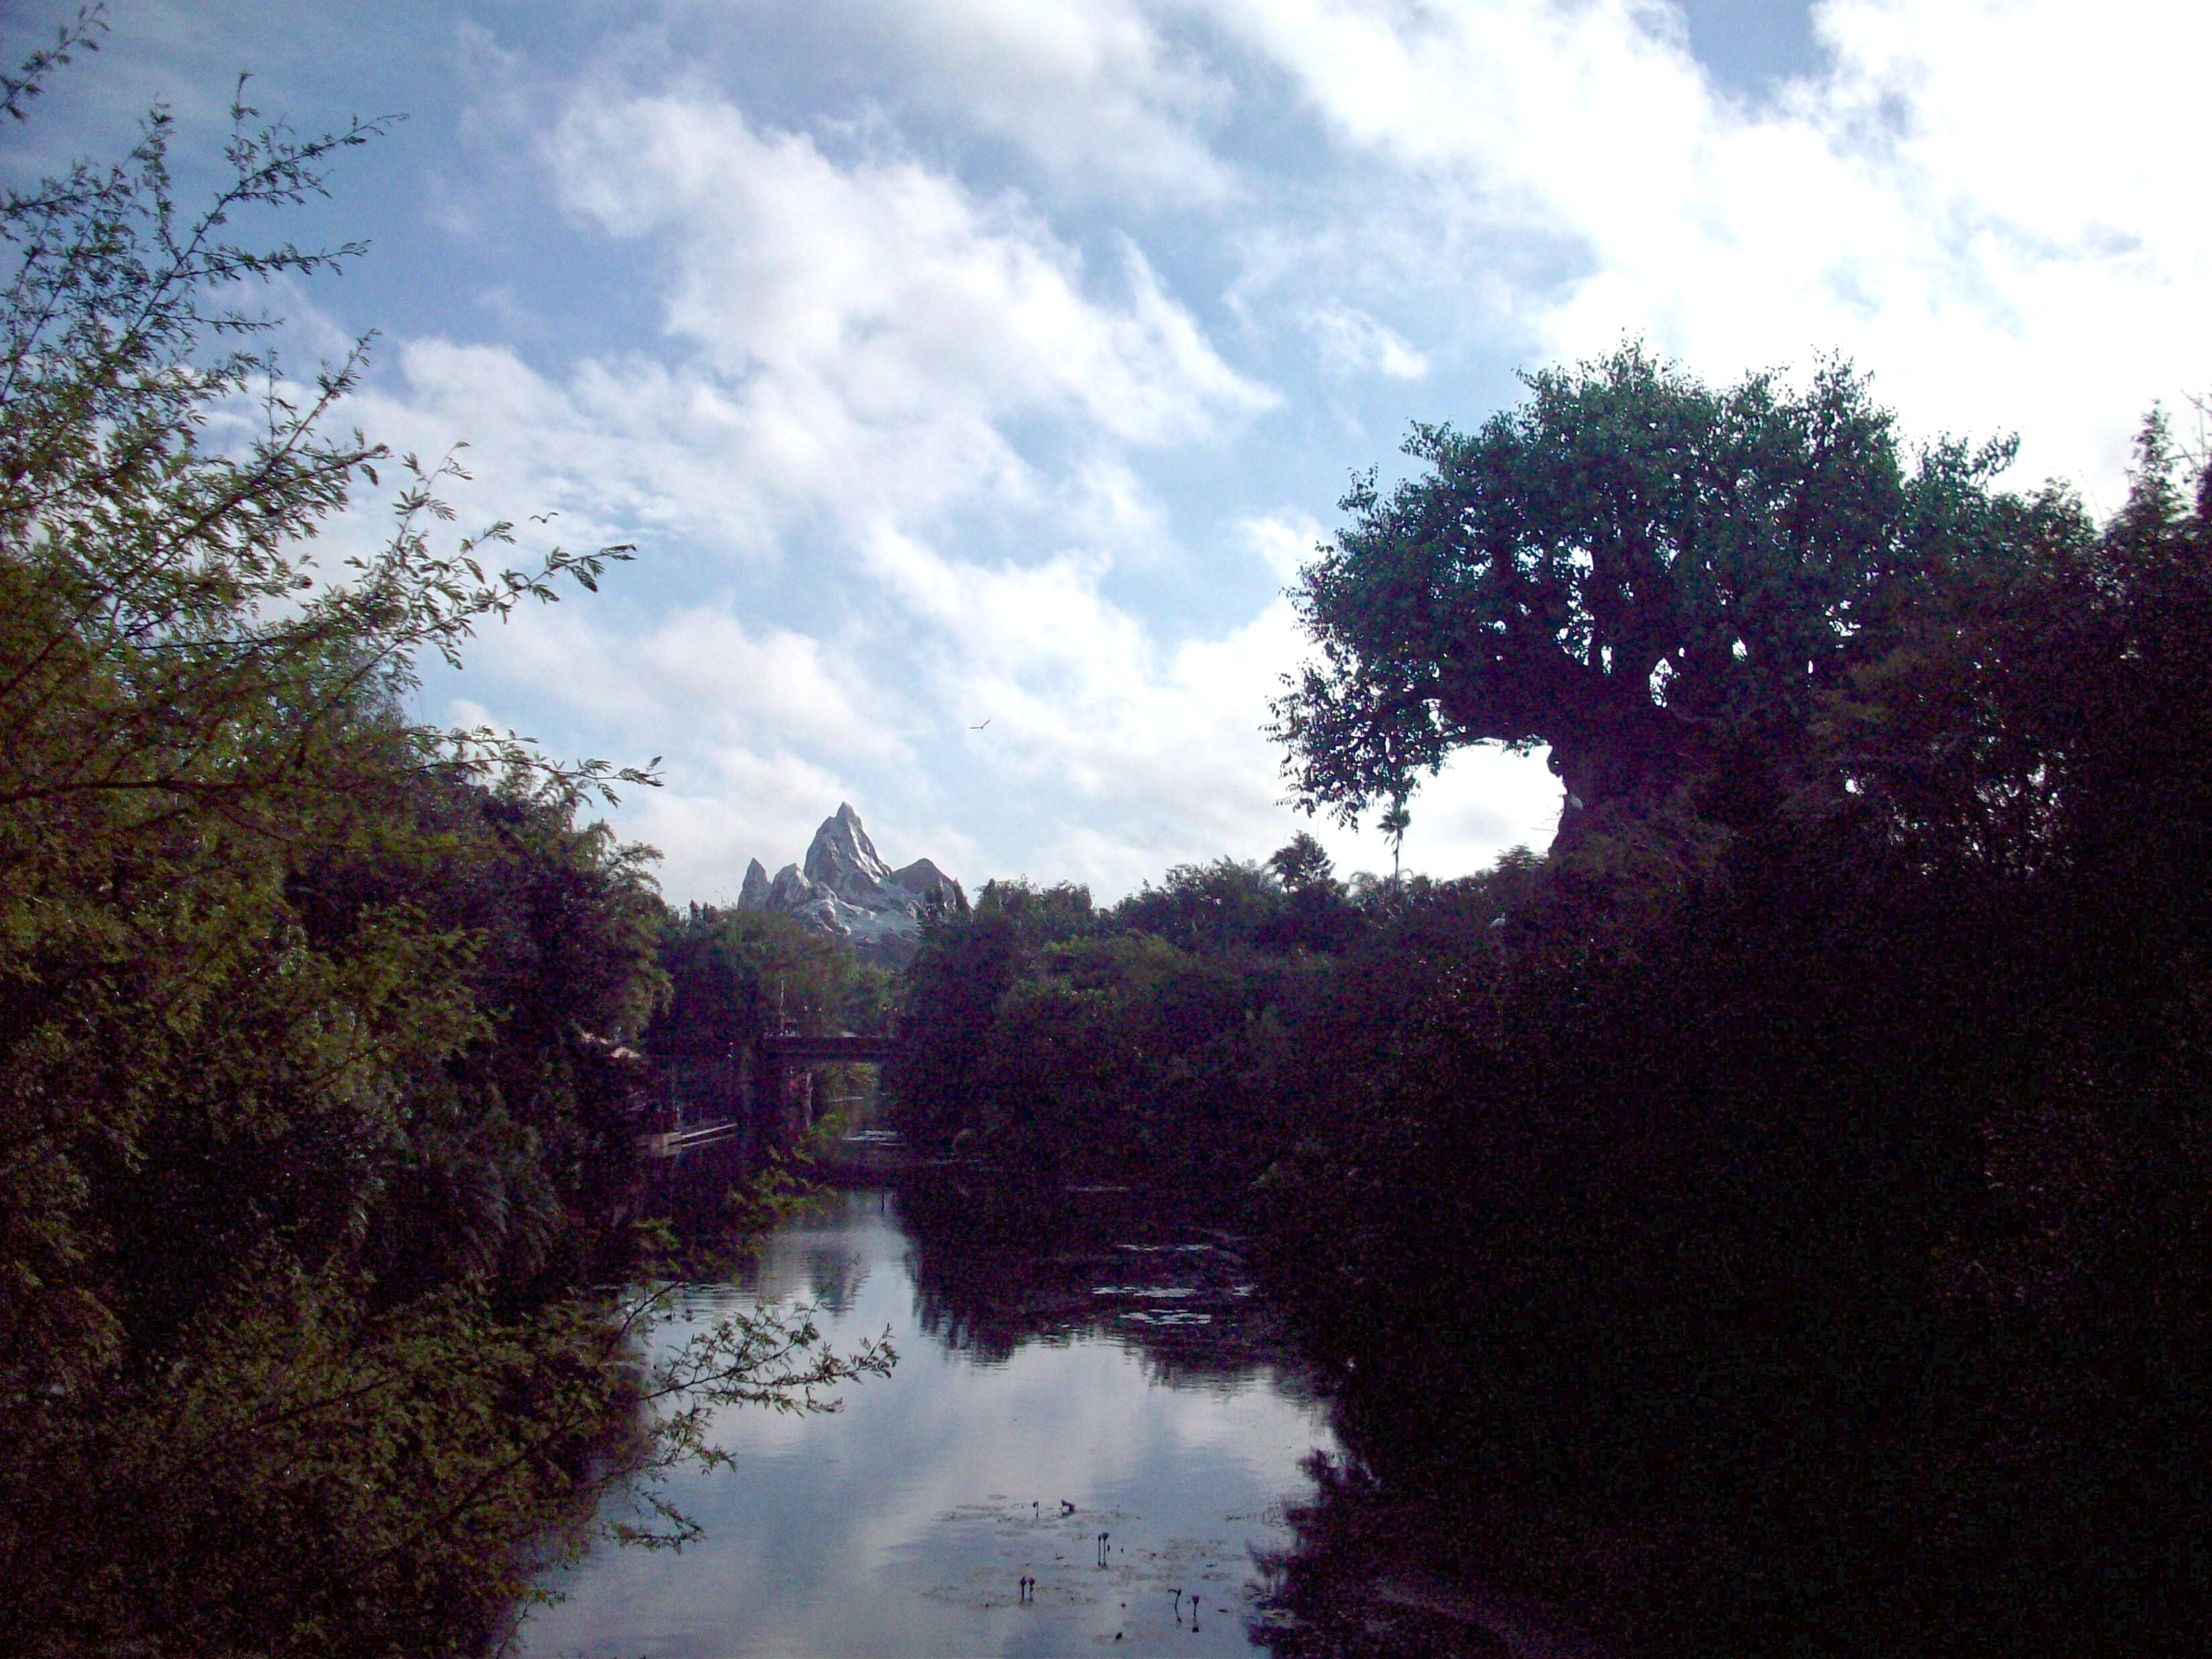 Wordless Wednesday: Two Continents at Disney's Animal Kingdom